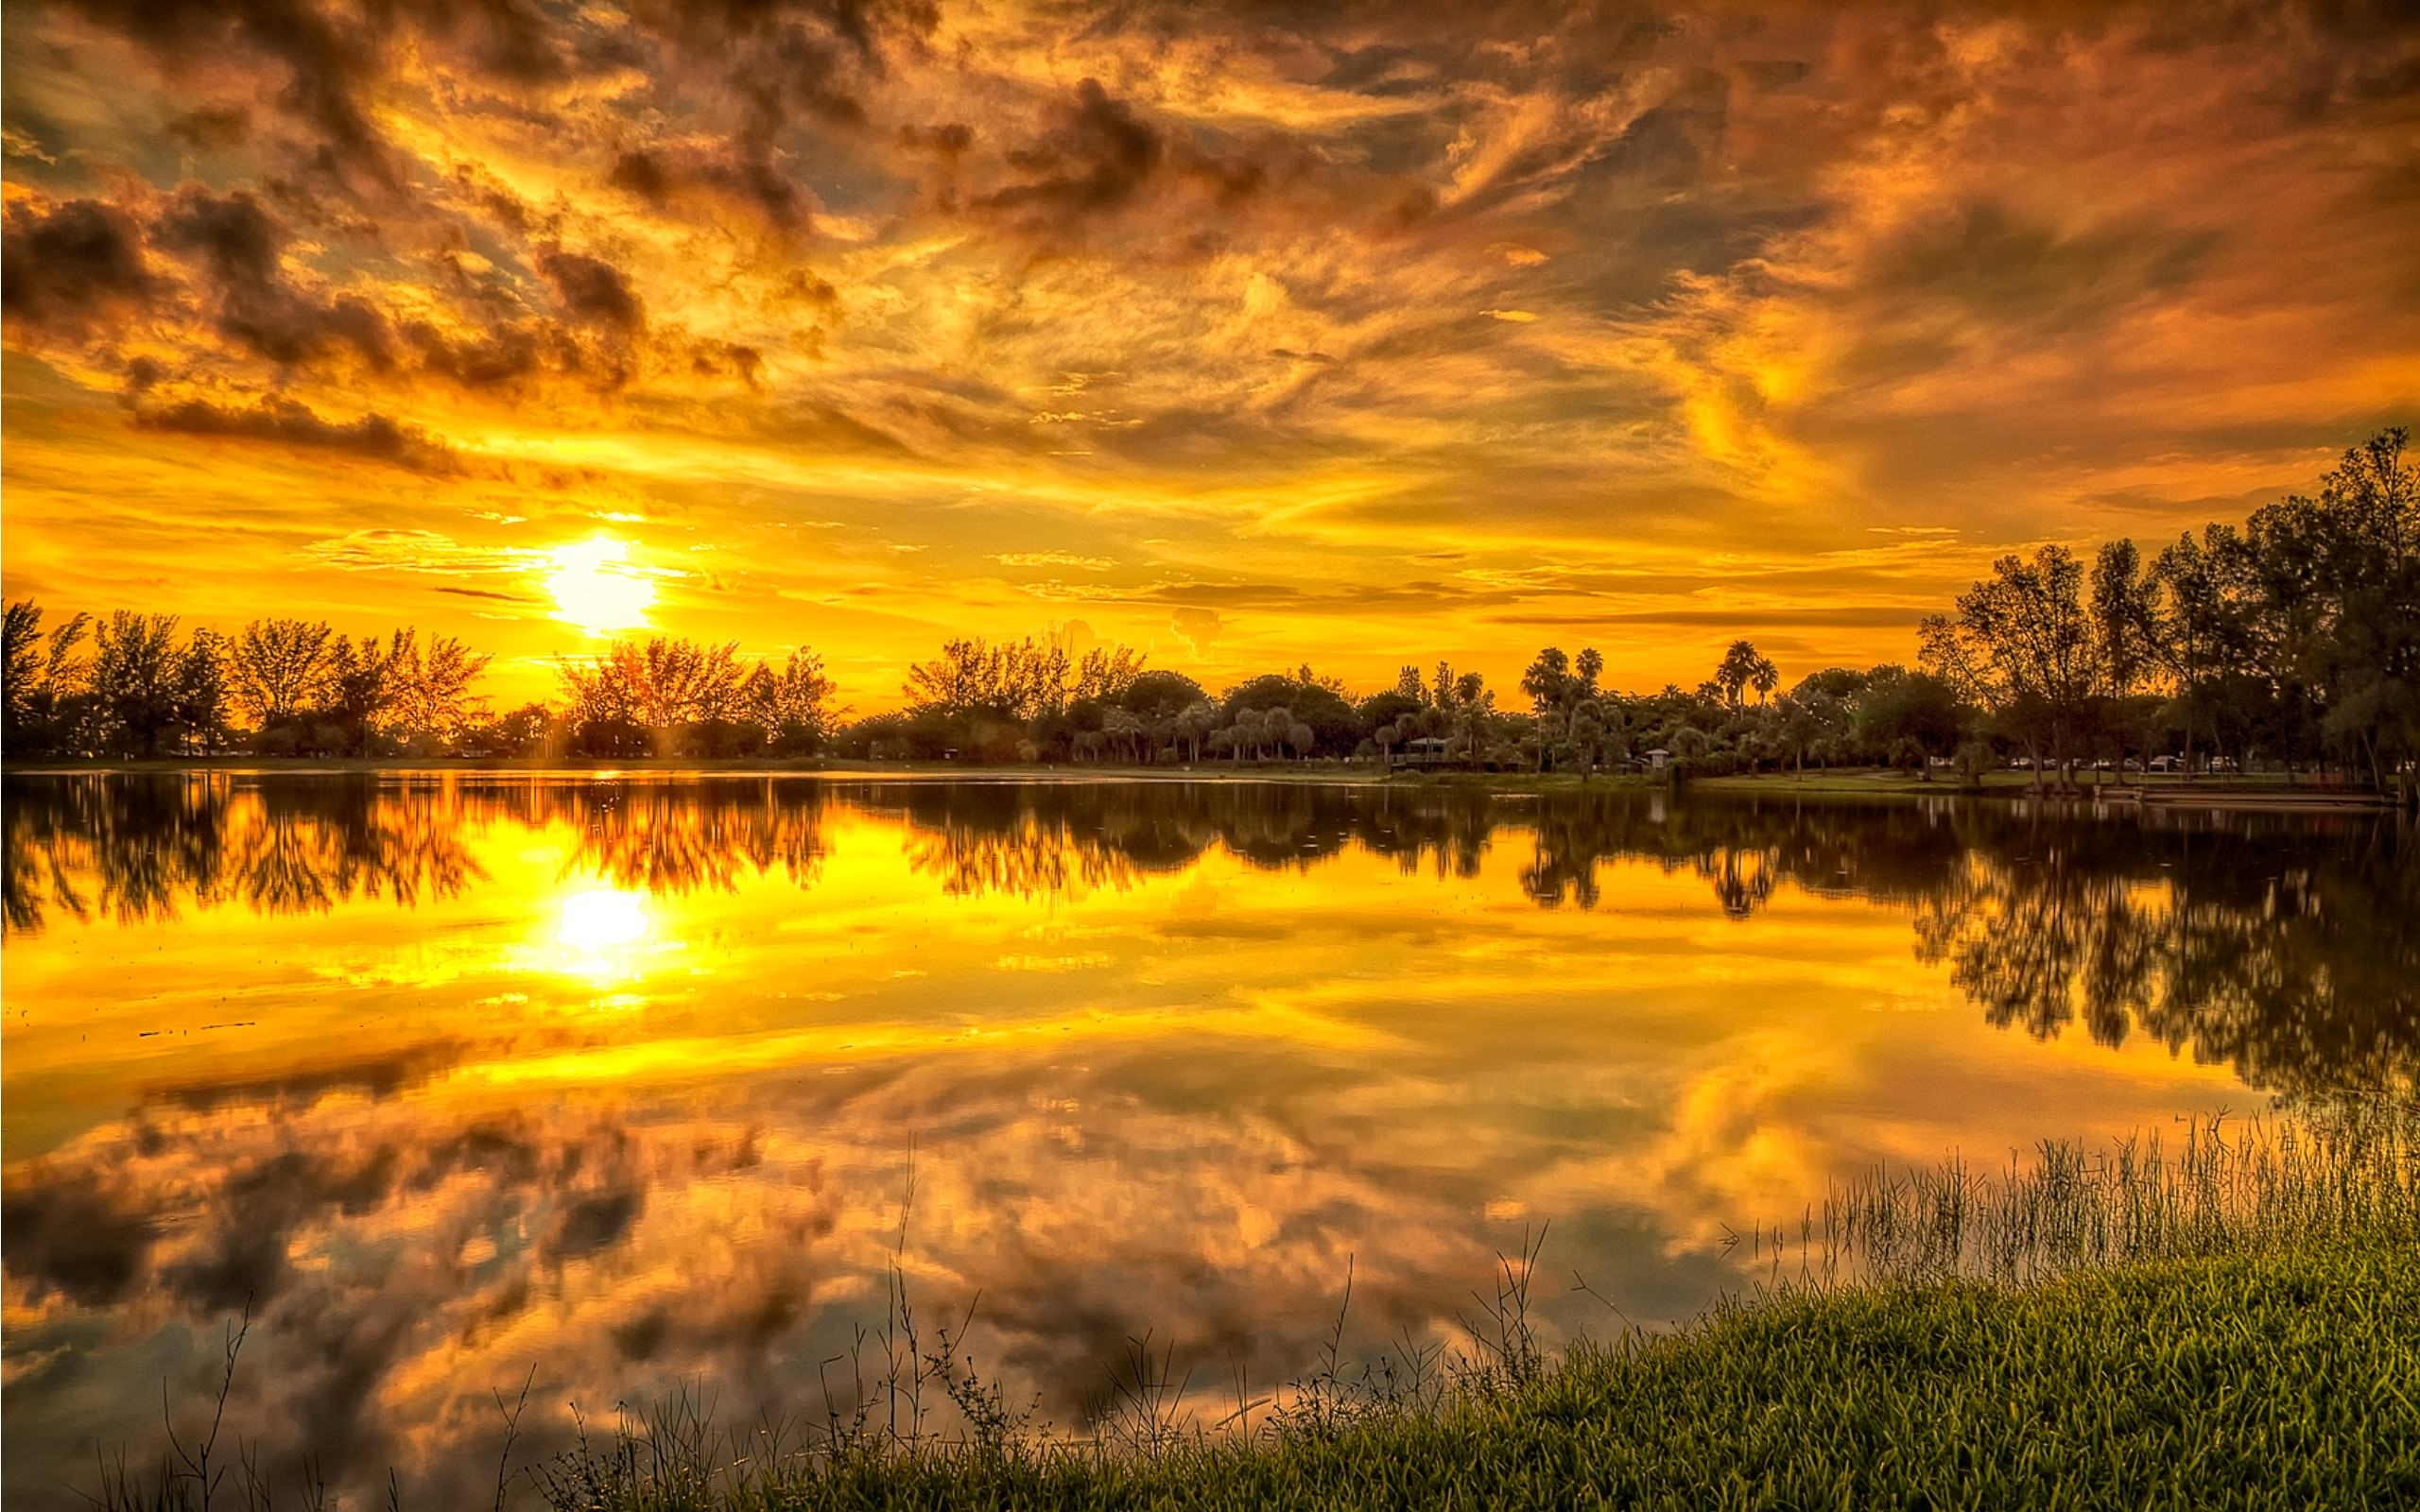 Sunrise Reflection in Lake Wallpaper